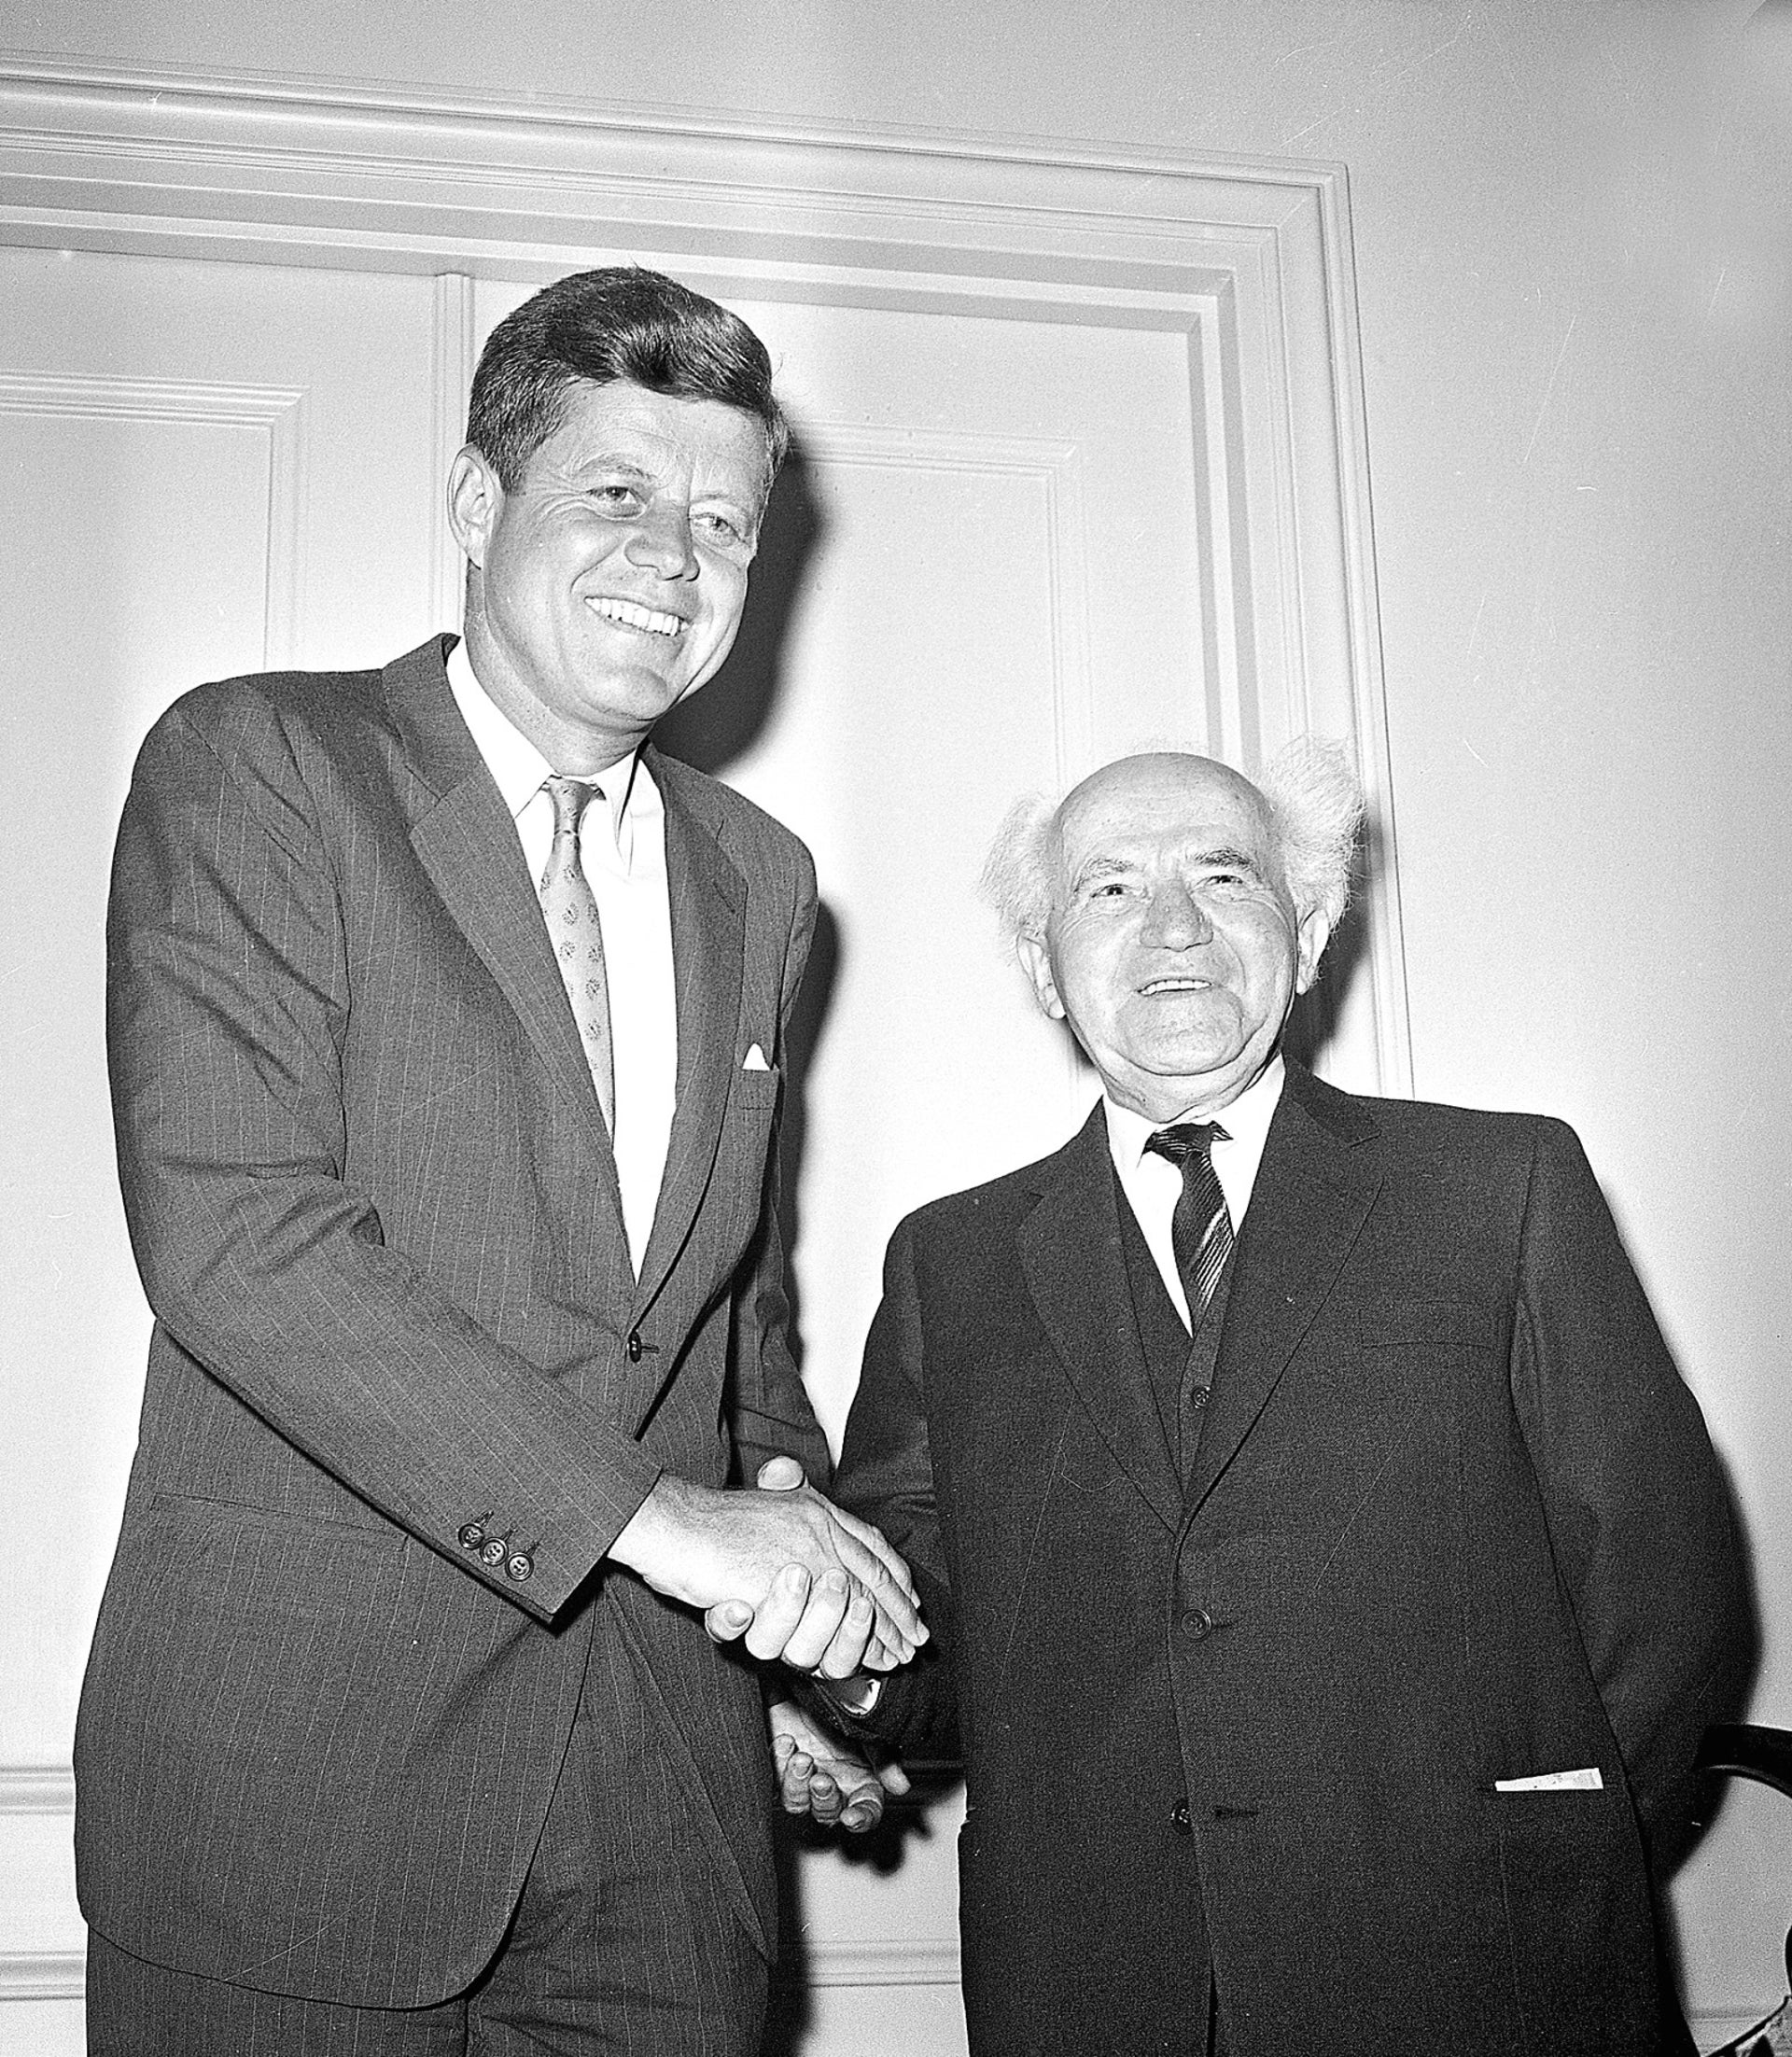 U.S. President John F. Kennedy meets with Israeli Premier David Ben-Gurion at the Waldorf Hotel in New York City on May 30, 1961.